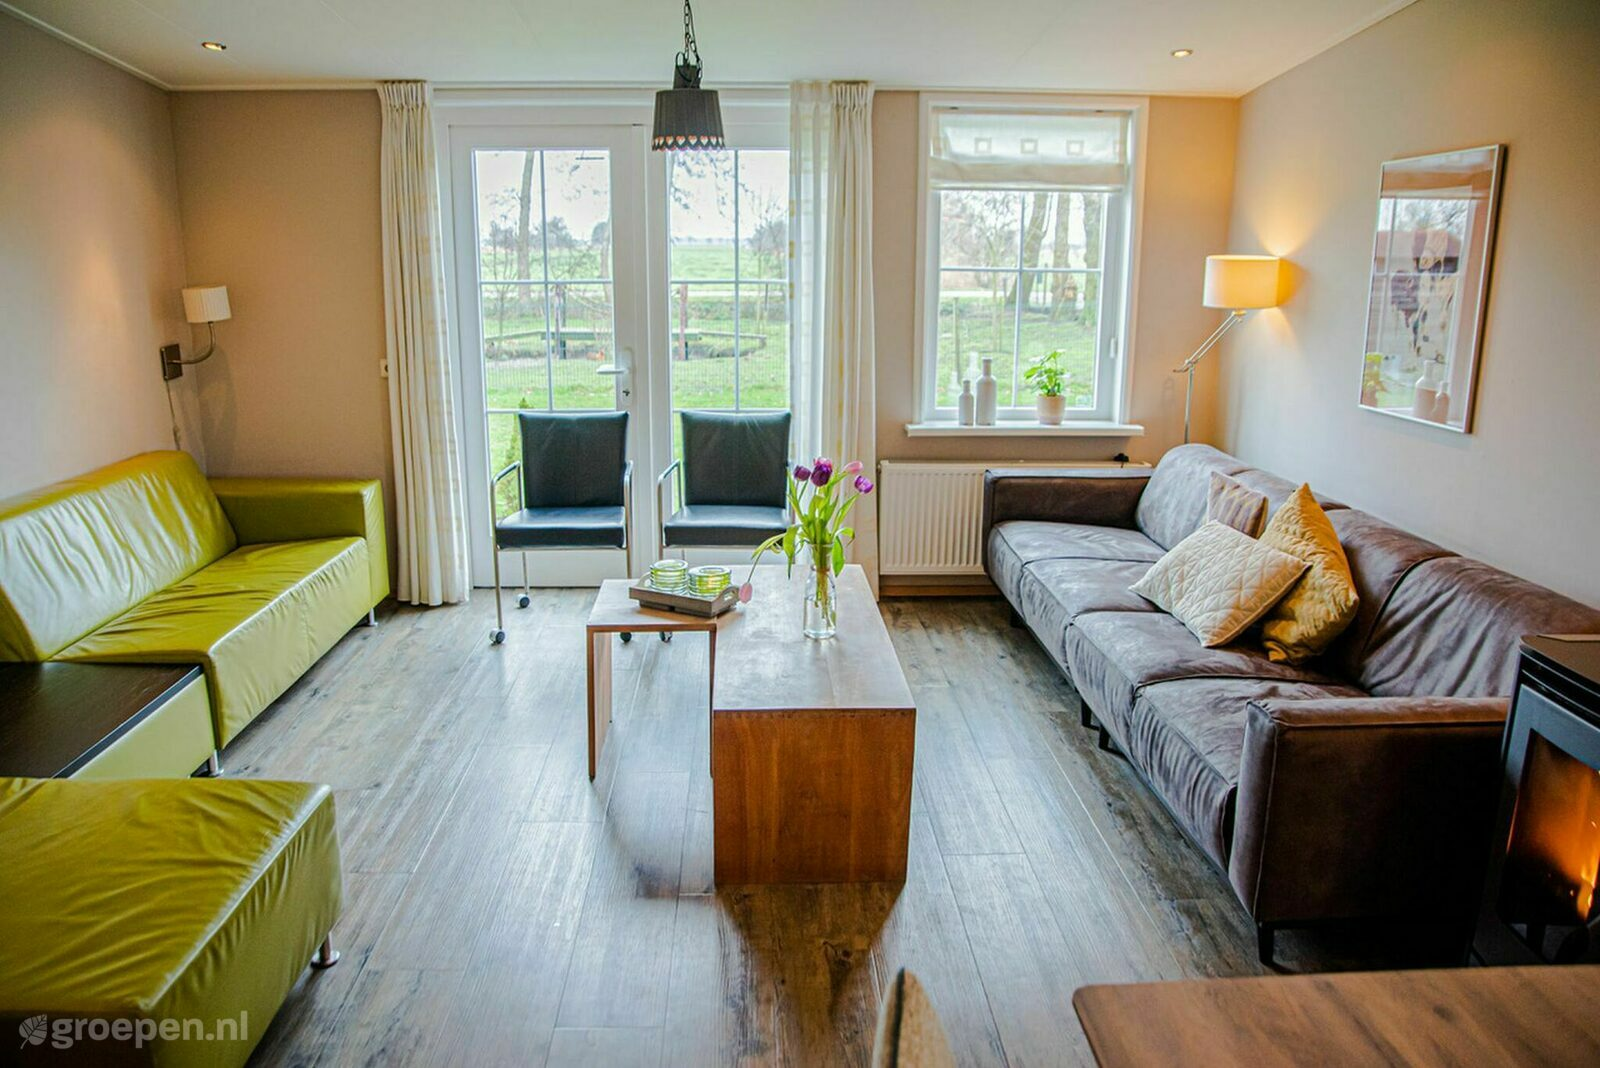 Group accommodation Staphorst